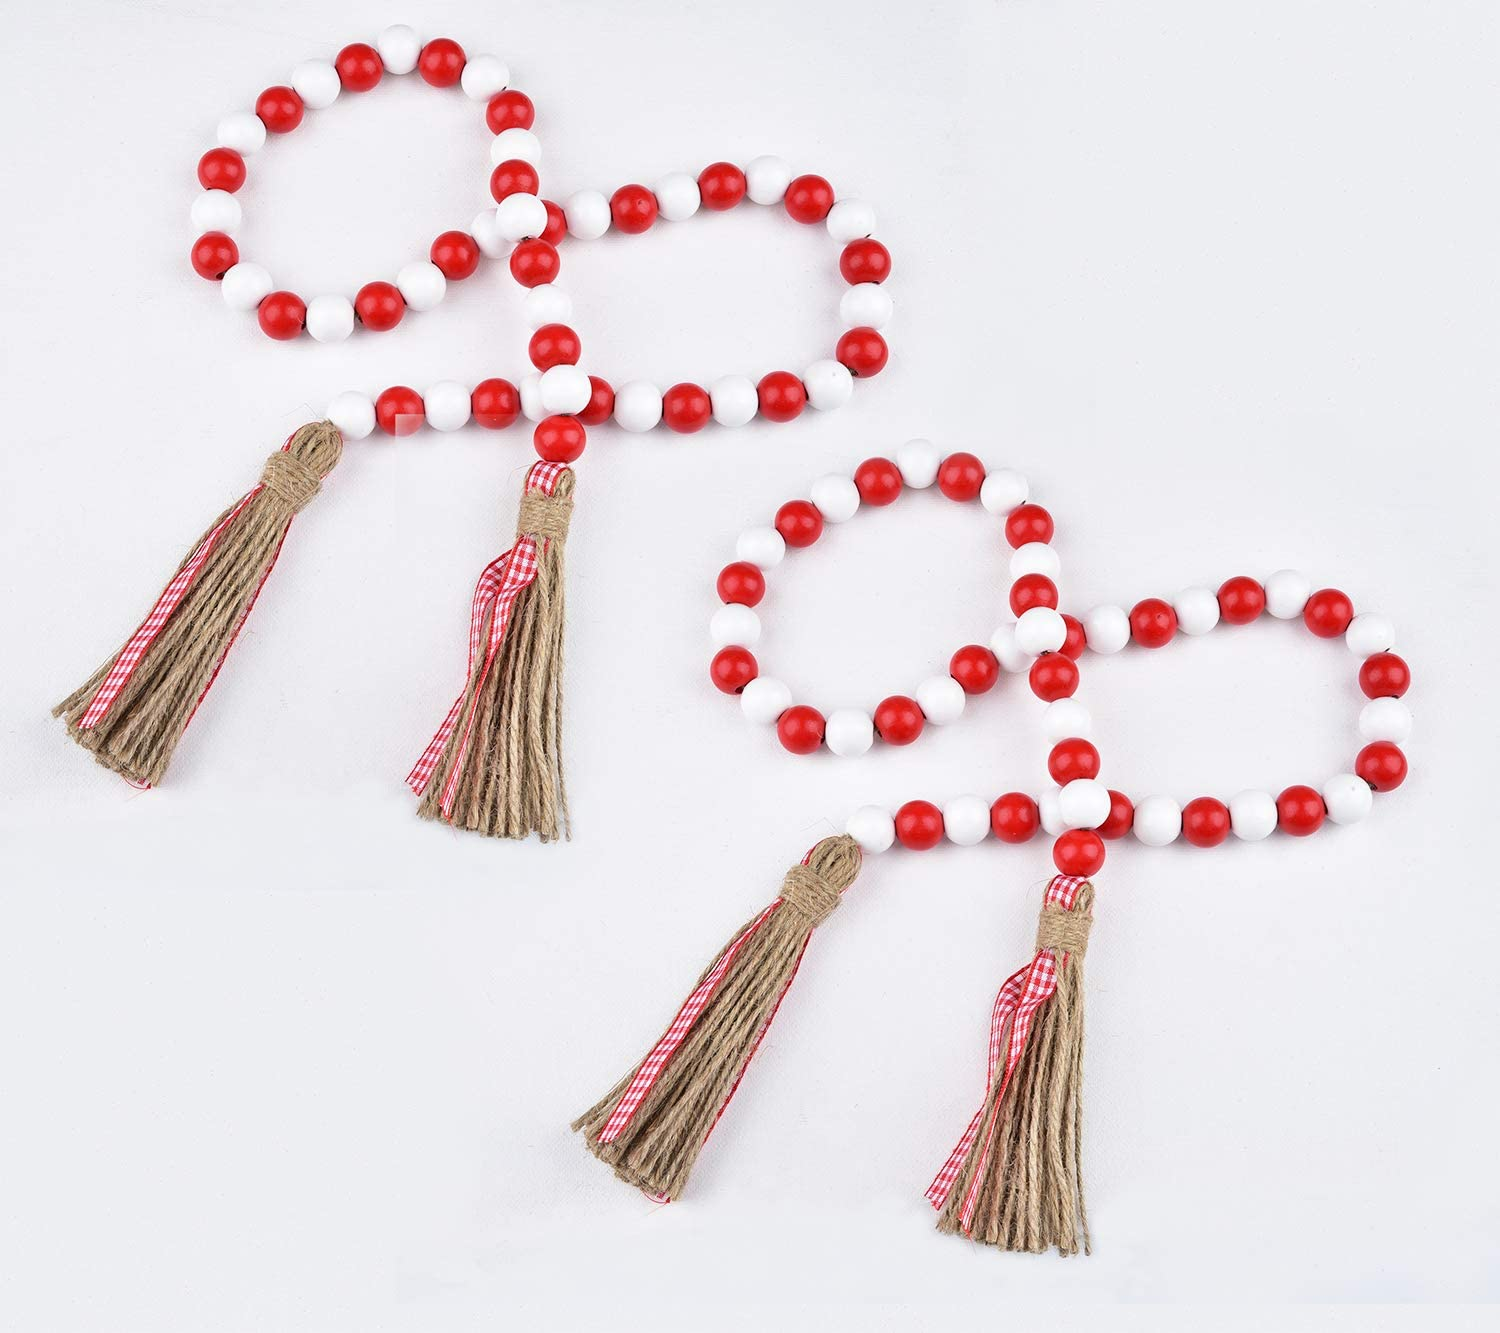 Wood Bead Garland 35Inch Hanging Garland Natural Prayer Bead Garland with Tassel for Farmhouse Home Room Decorations (Red + White)